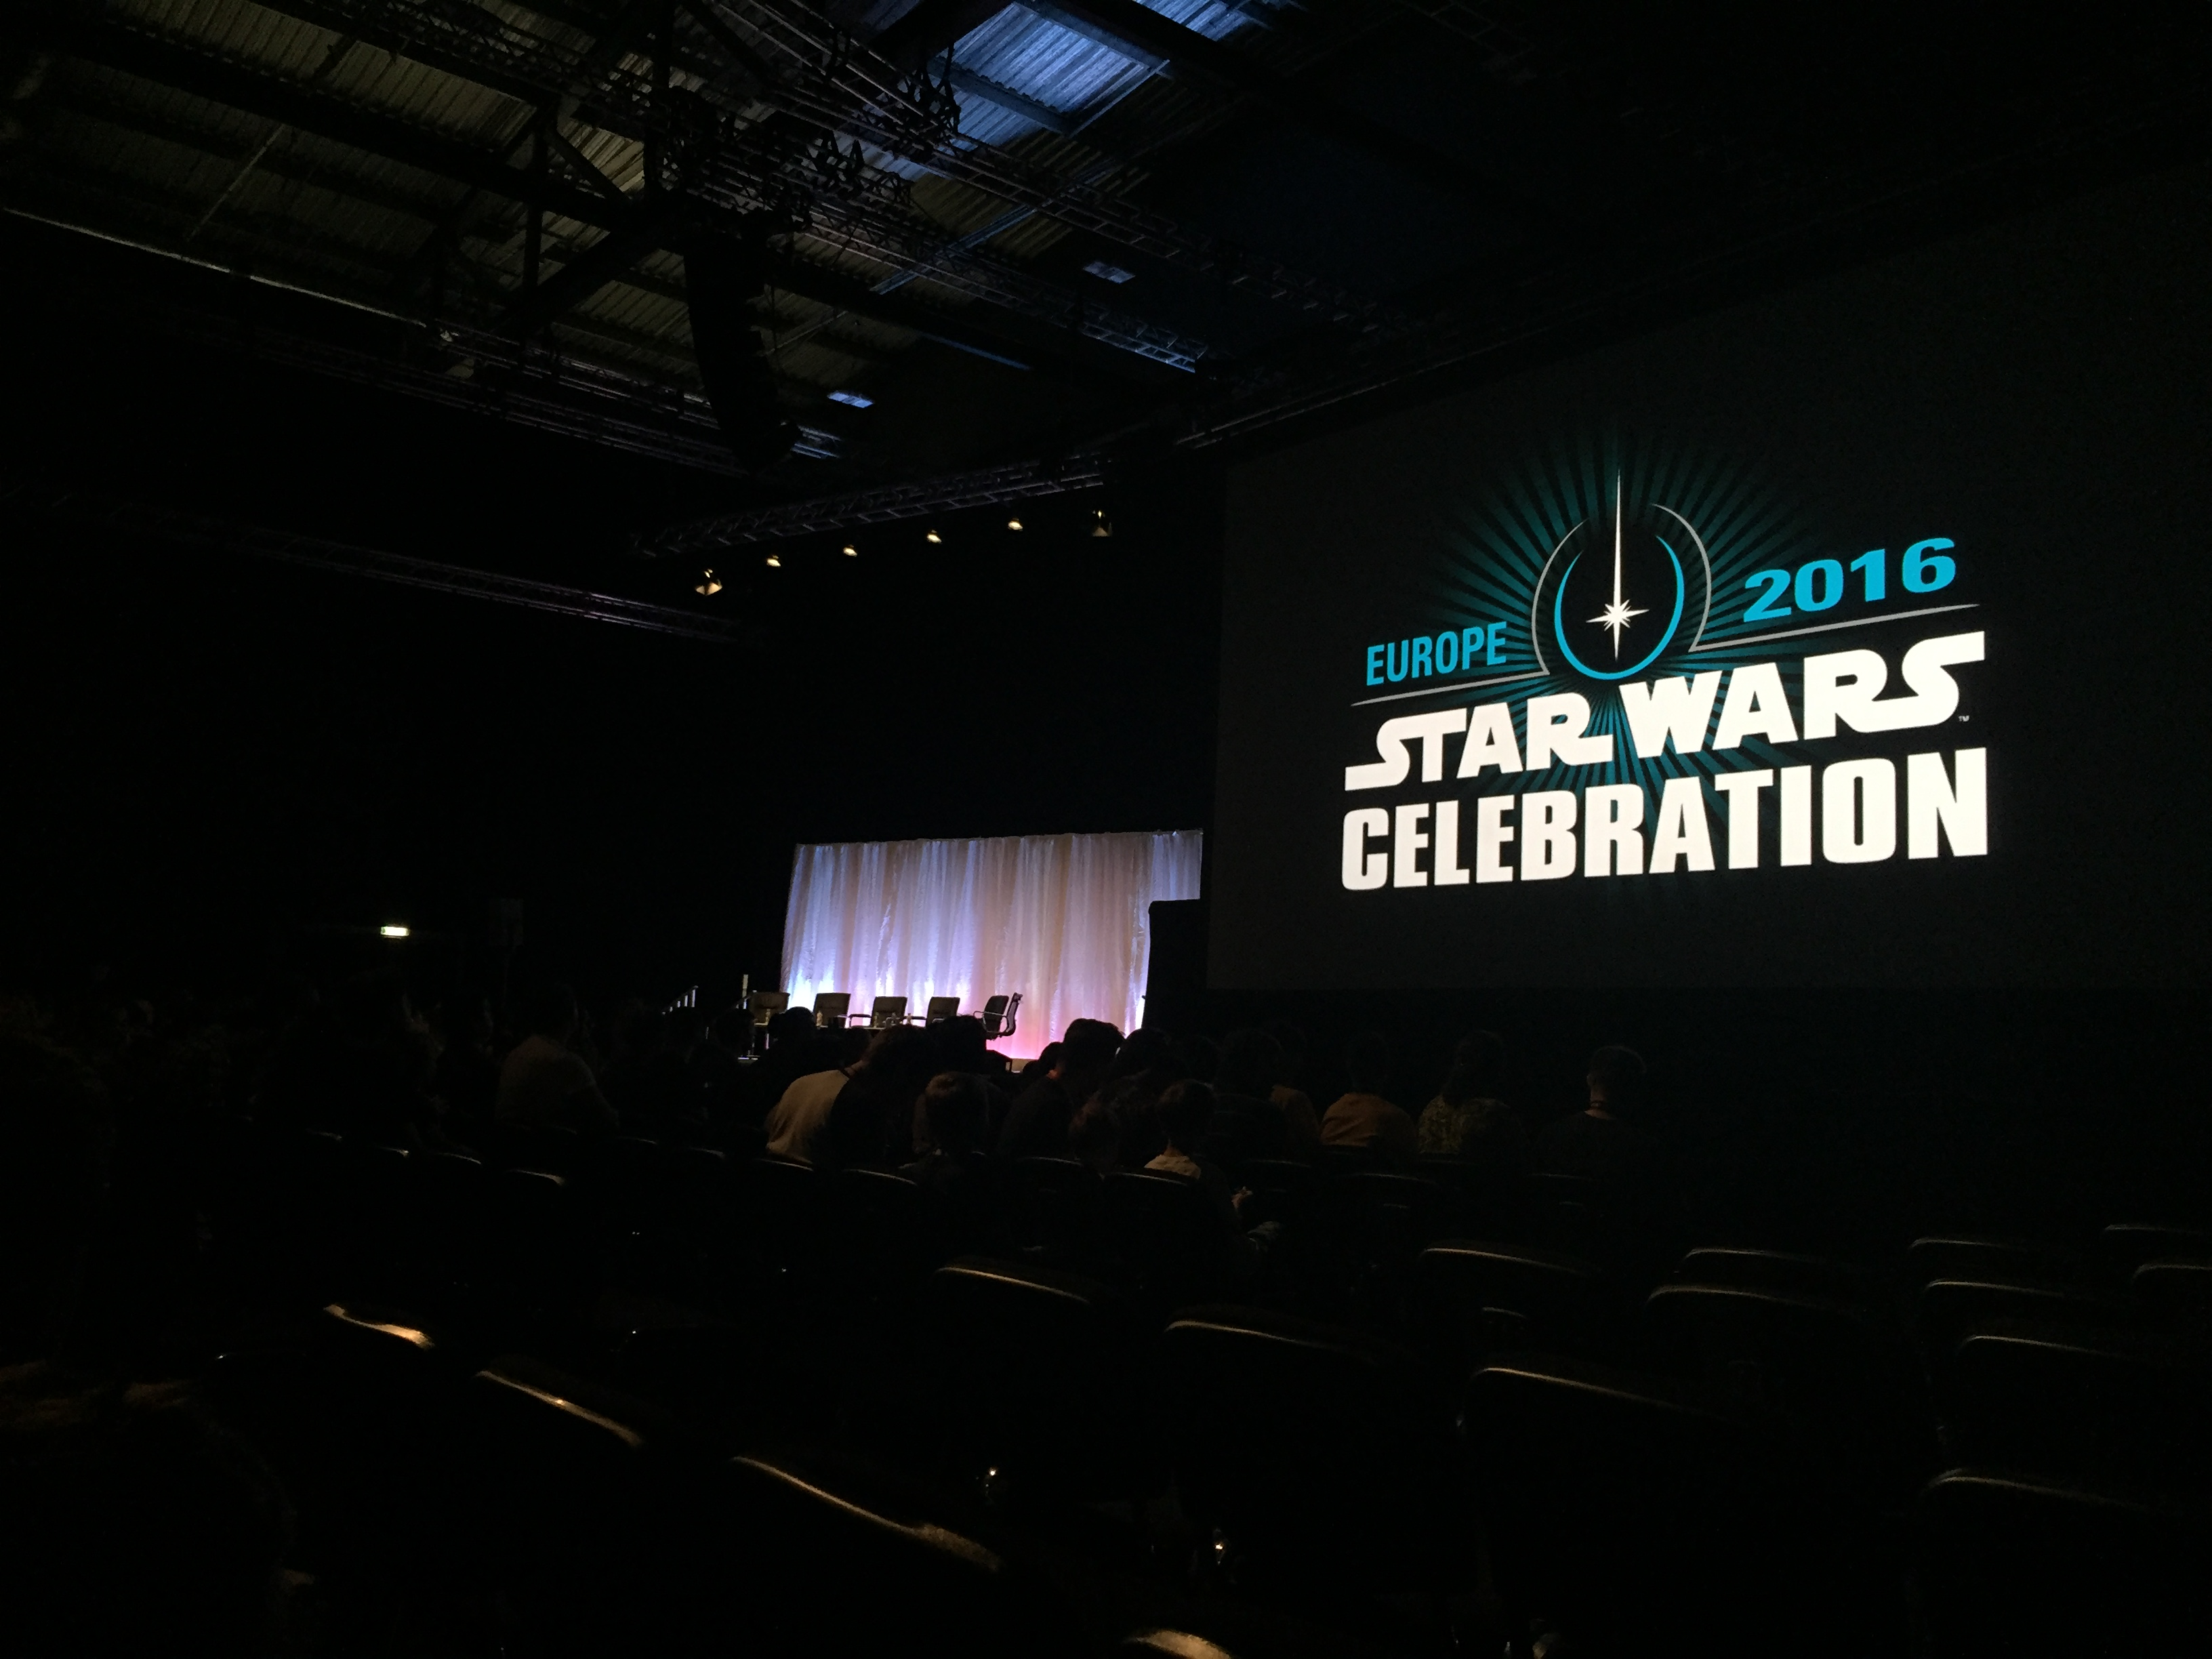 Star Wars Celebration Galaxy Stage